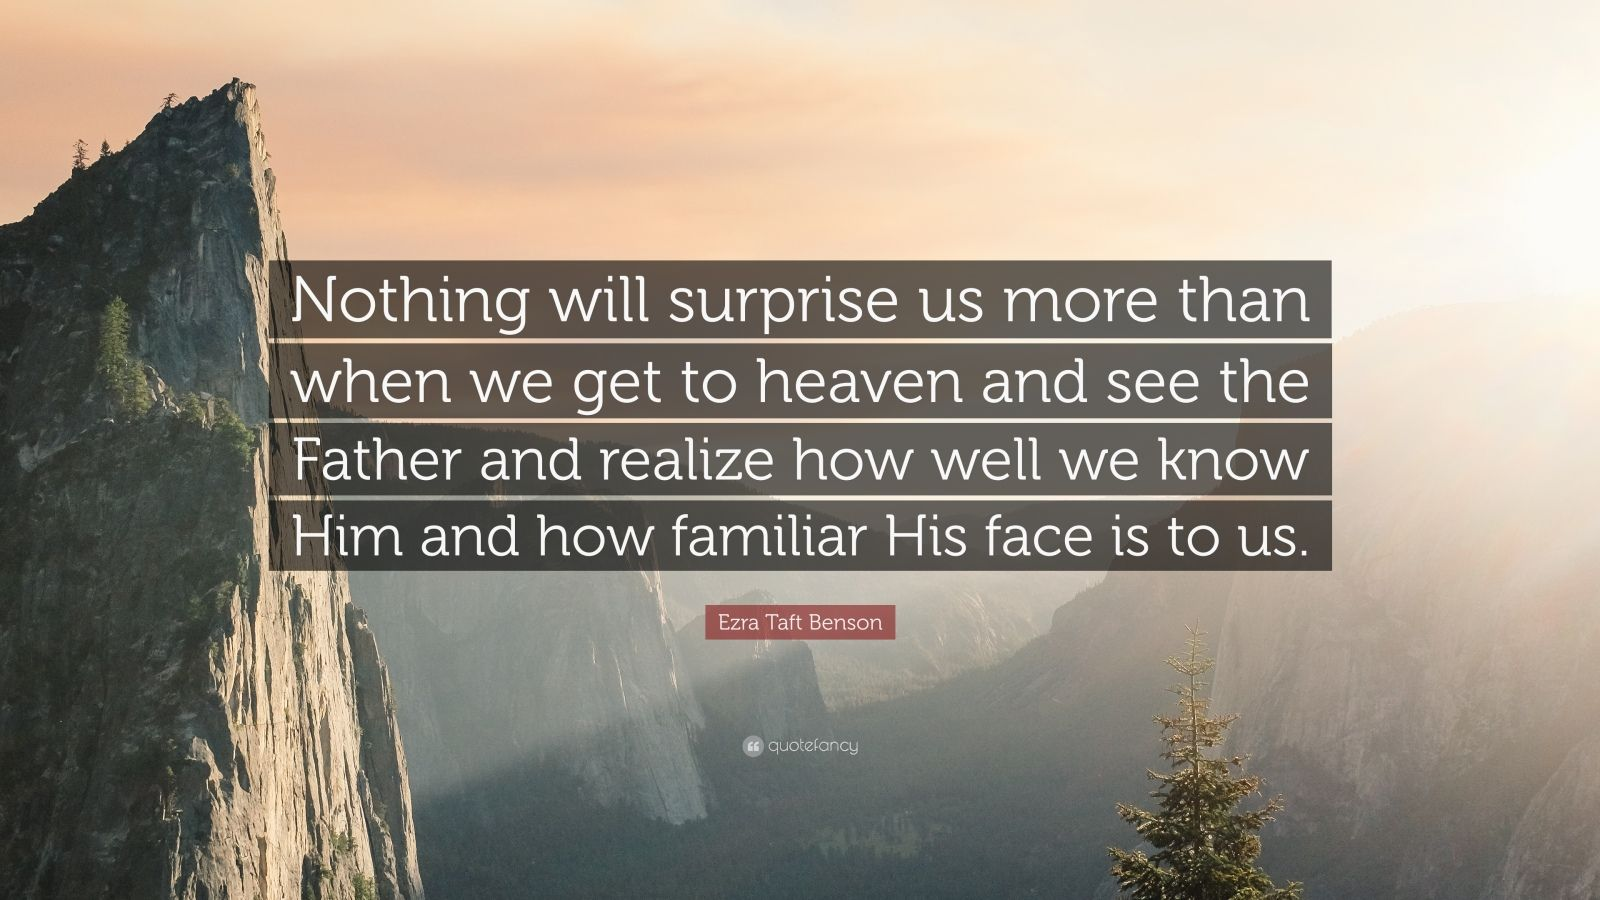 "Ezra Taft Benson Quote: ""Nothing will surprise us more than when we get to heaven and see the Father and realize how well we know Him and how familiar His face is to us."""